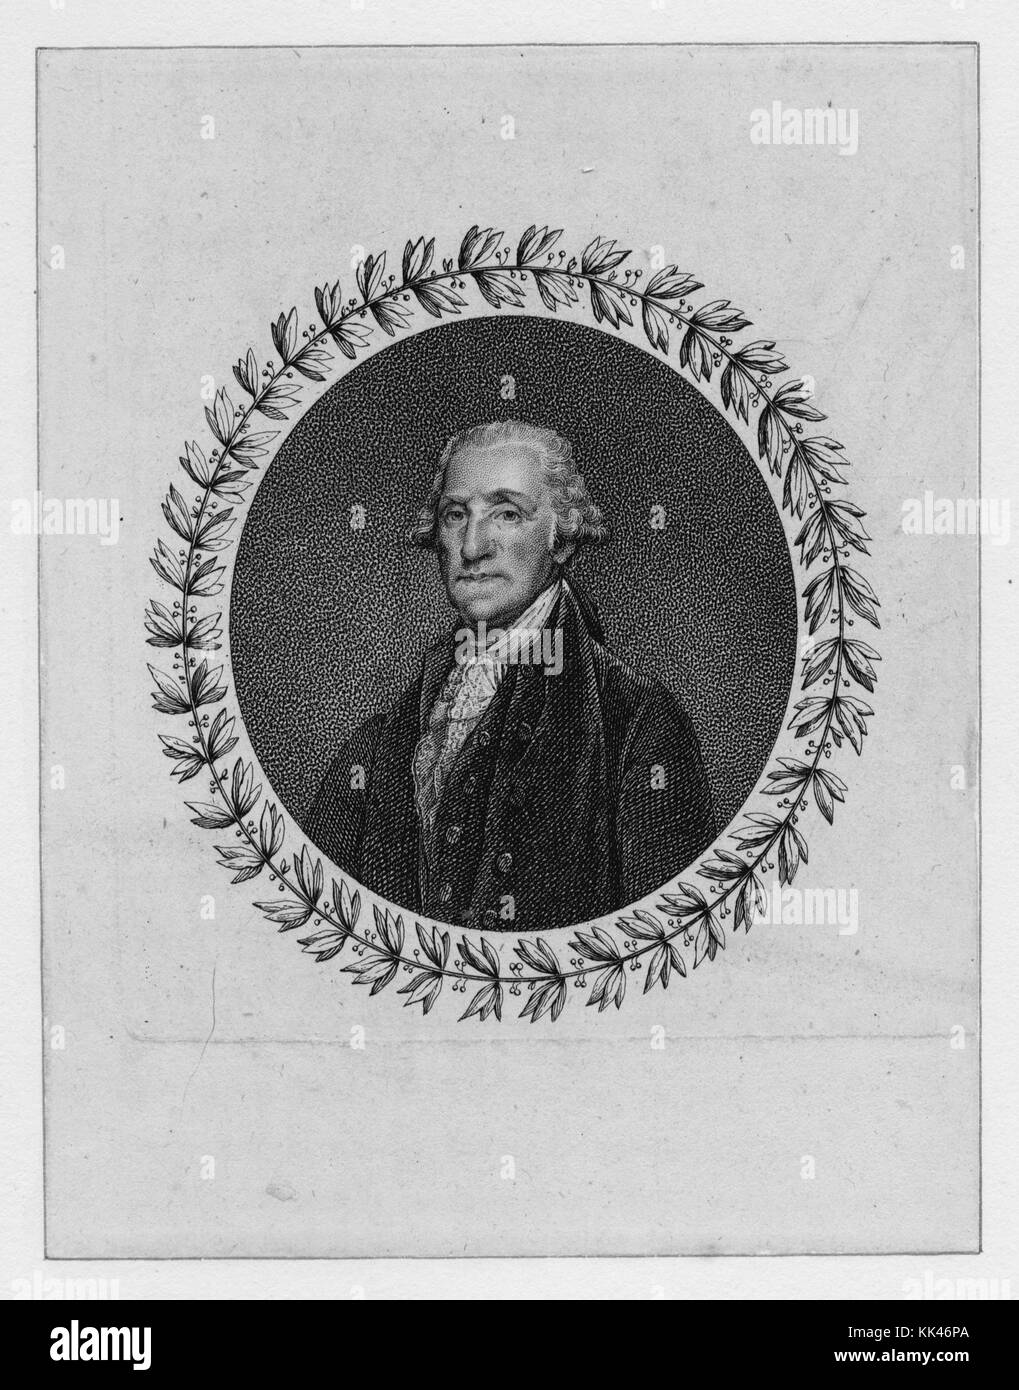 Engraved, oval shaped portrait of George Washington, with a wreath around the border, 3388. From the New York Public - Stock Image